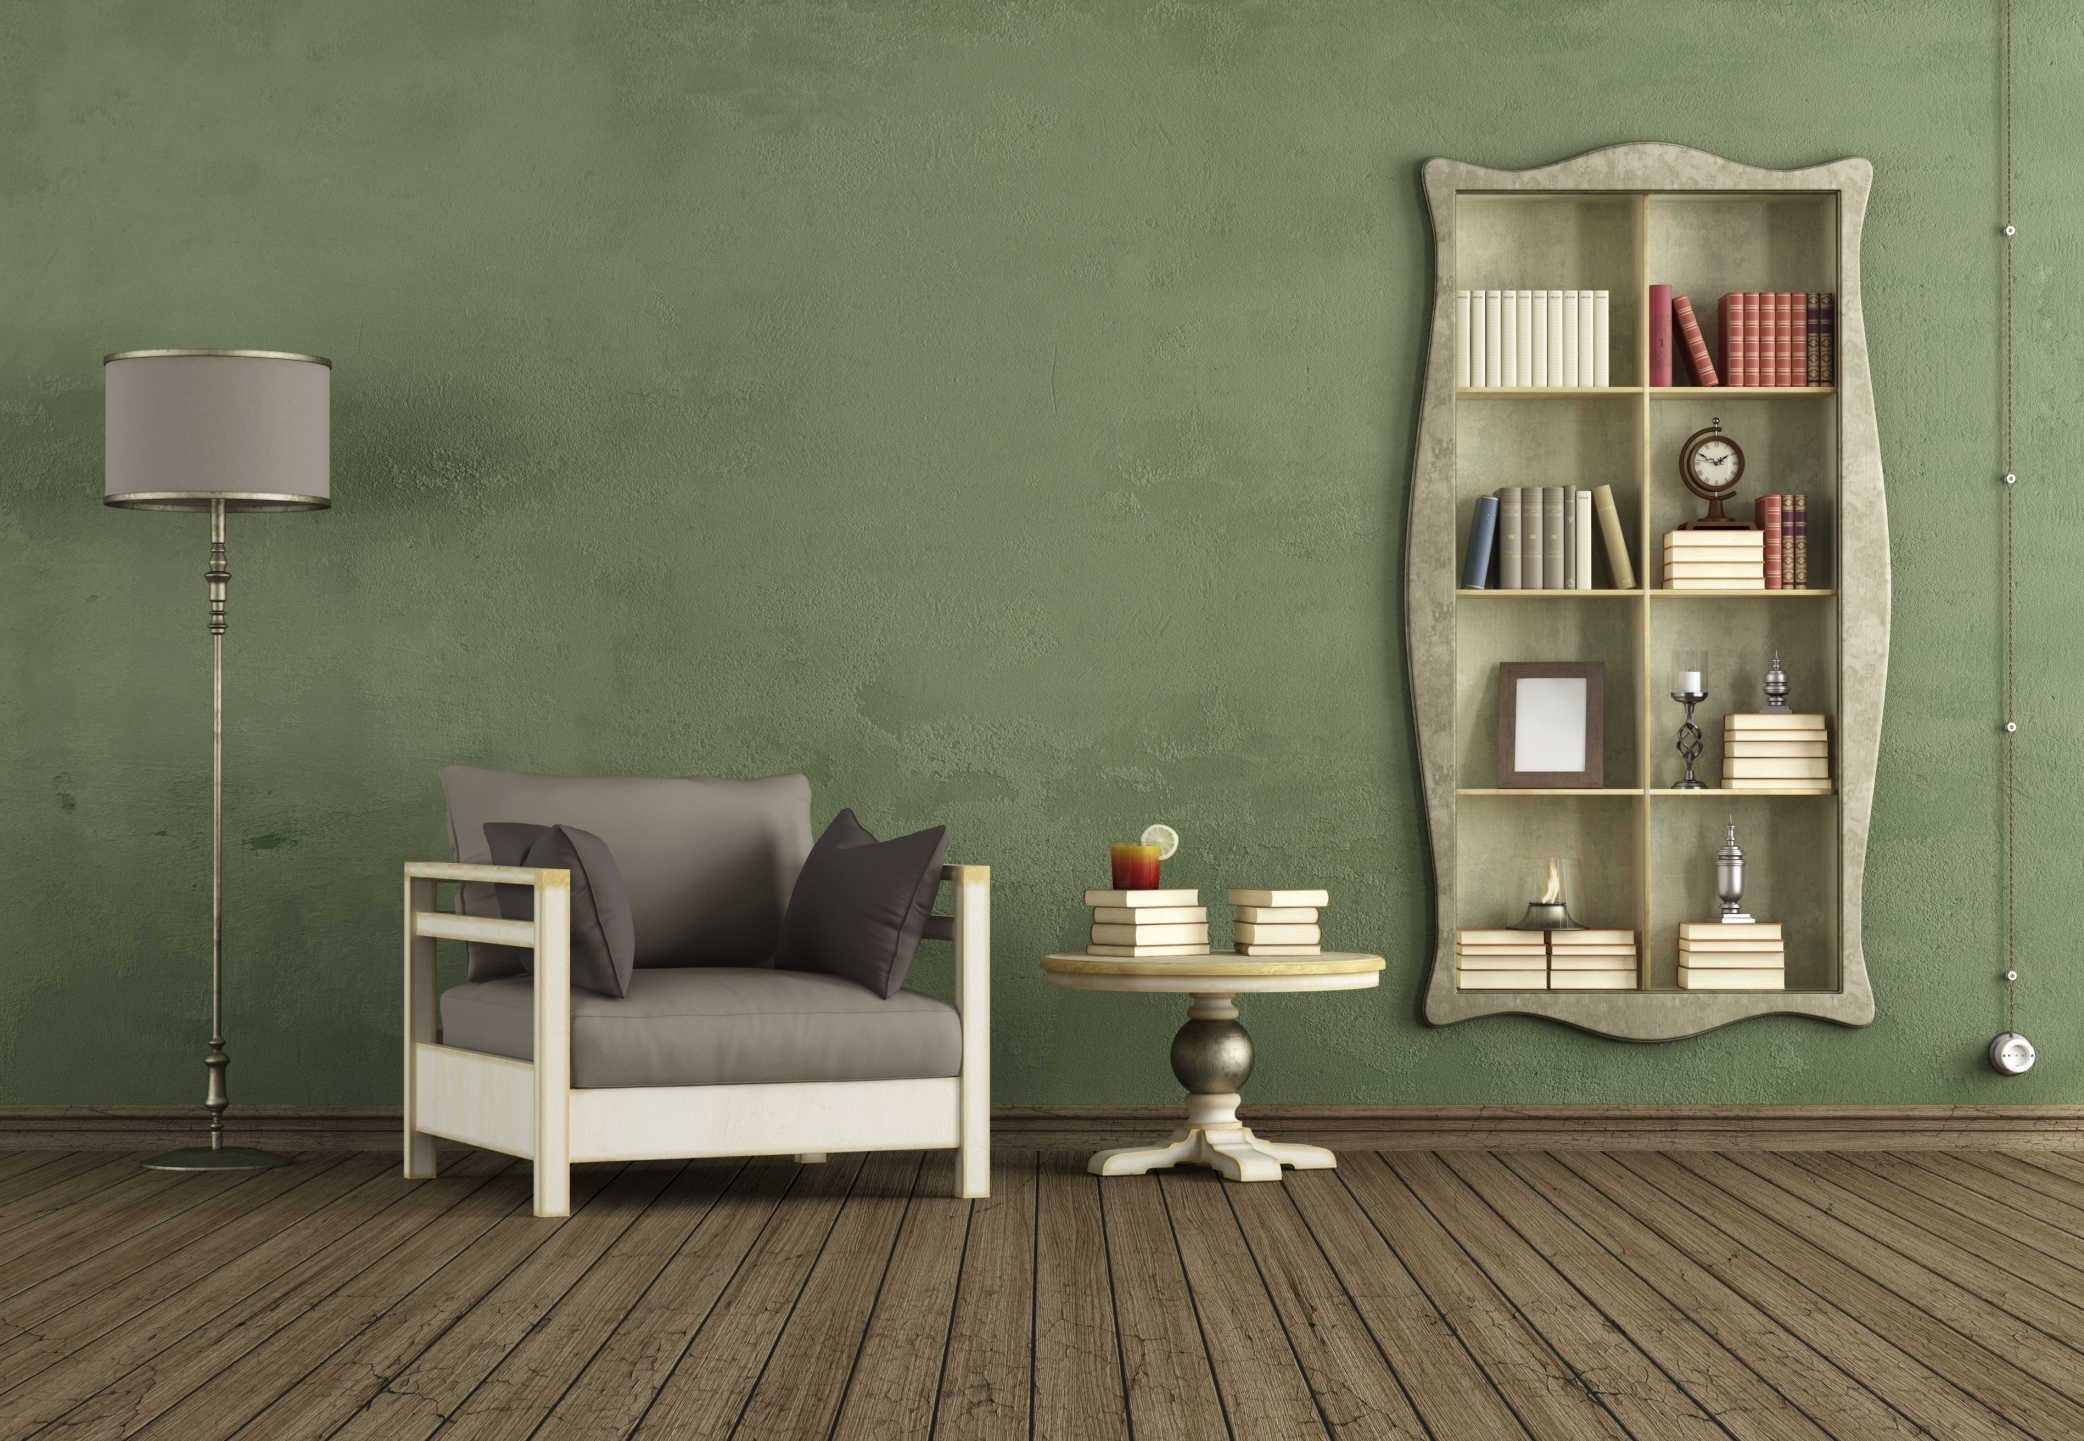 Room Green Accent Wall Design Decor Gallery With Ideas Interior T Intended For Latest Green Wall Accents (View 15 of 15)